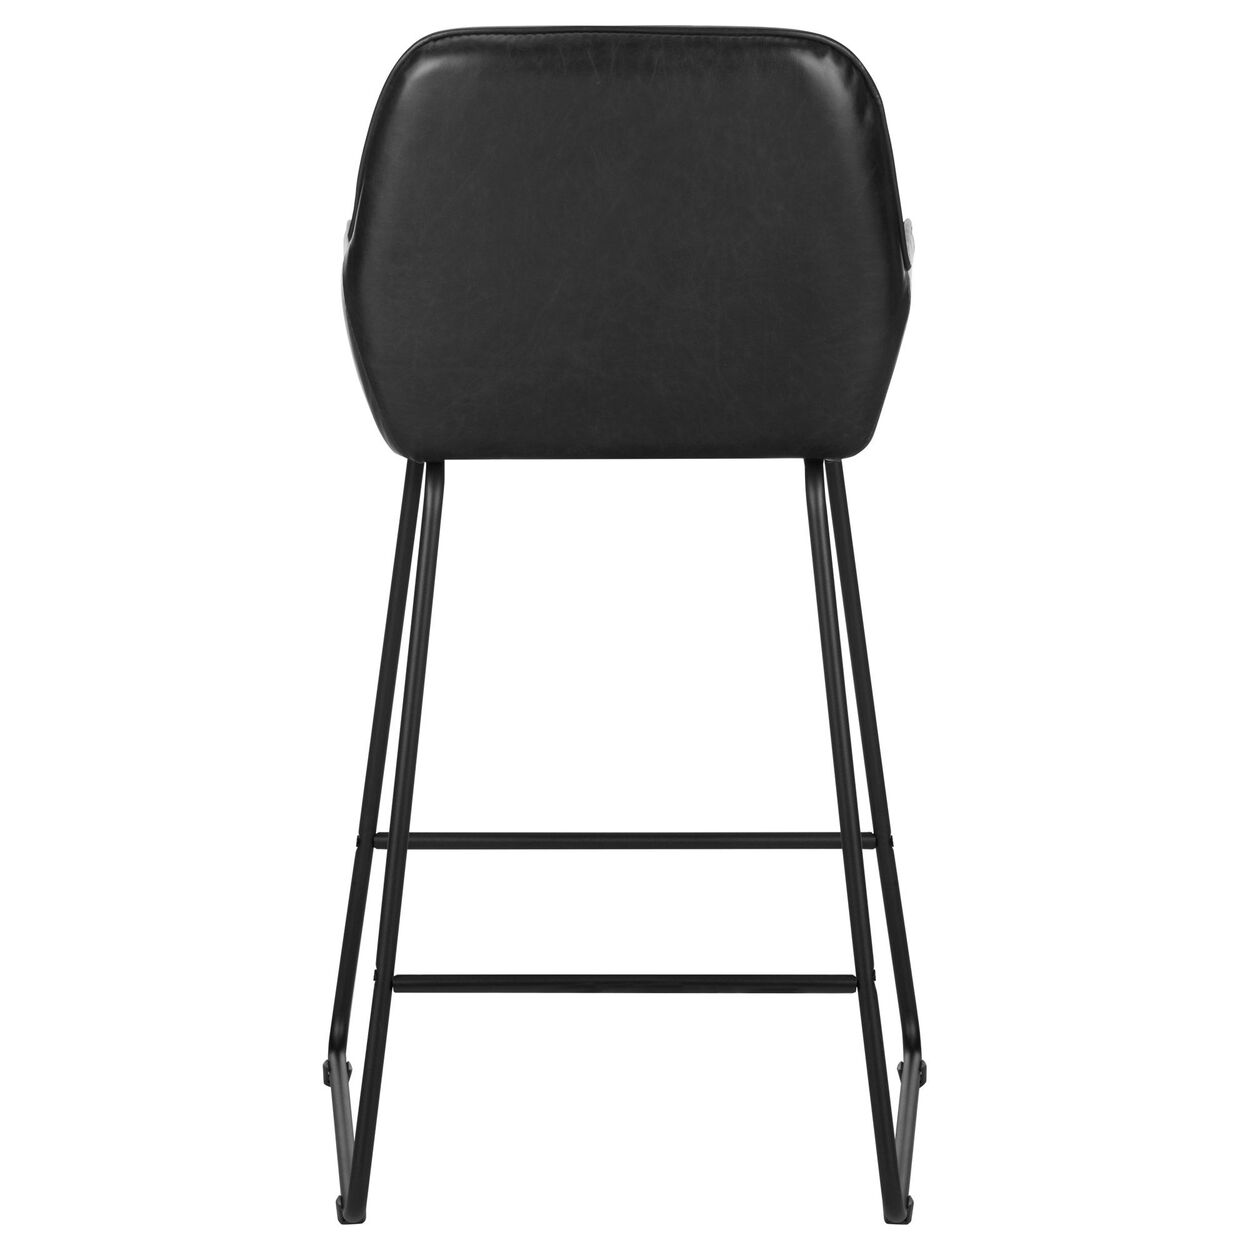 Textured Faux Leather and Metal Counter Stool